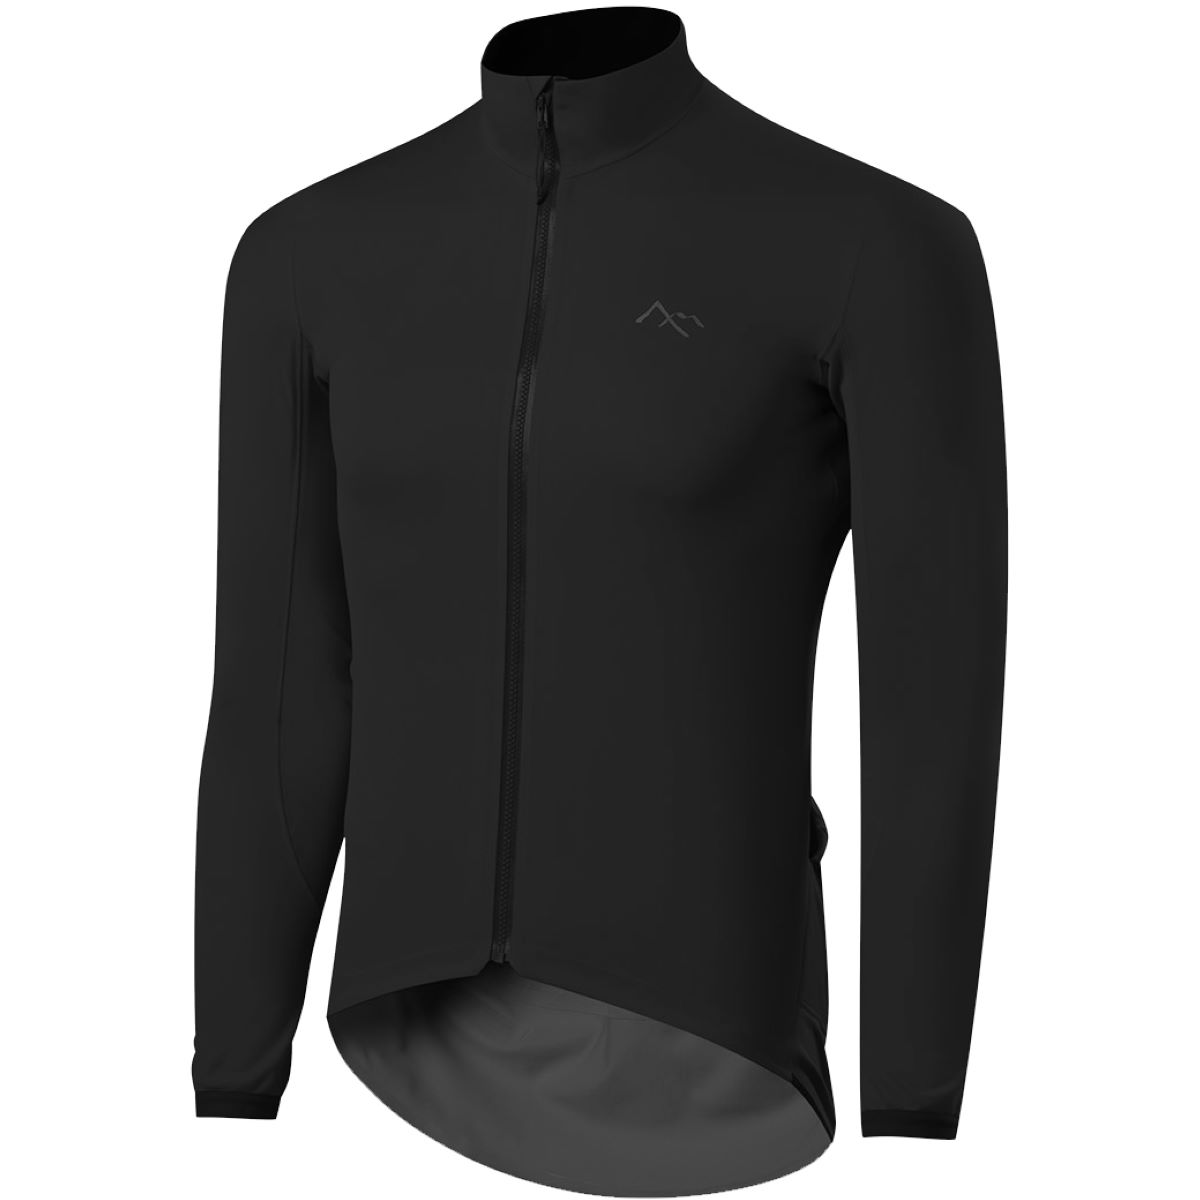 Maillot 7Mesh Corsa Windstopper Softshell - S Noir  Coupe-vents vélo